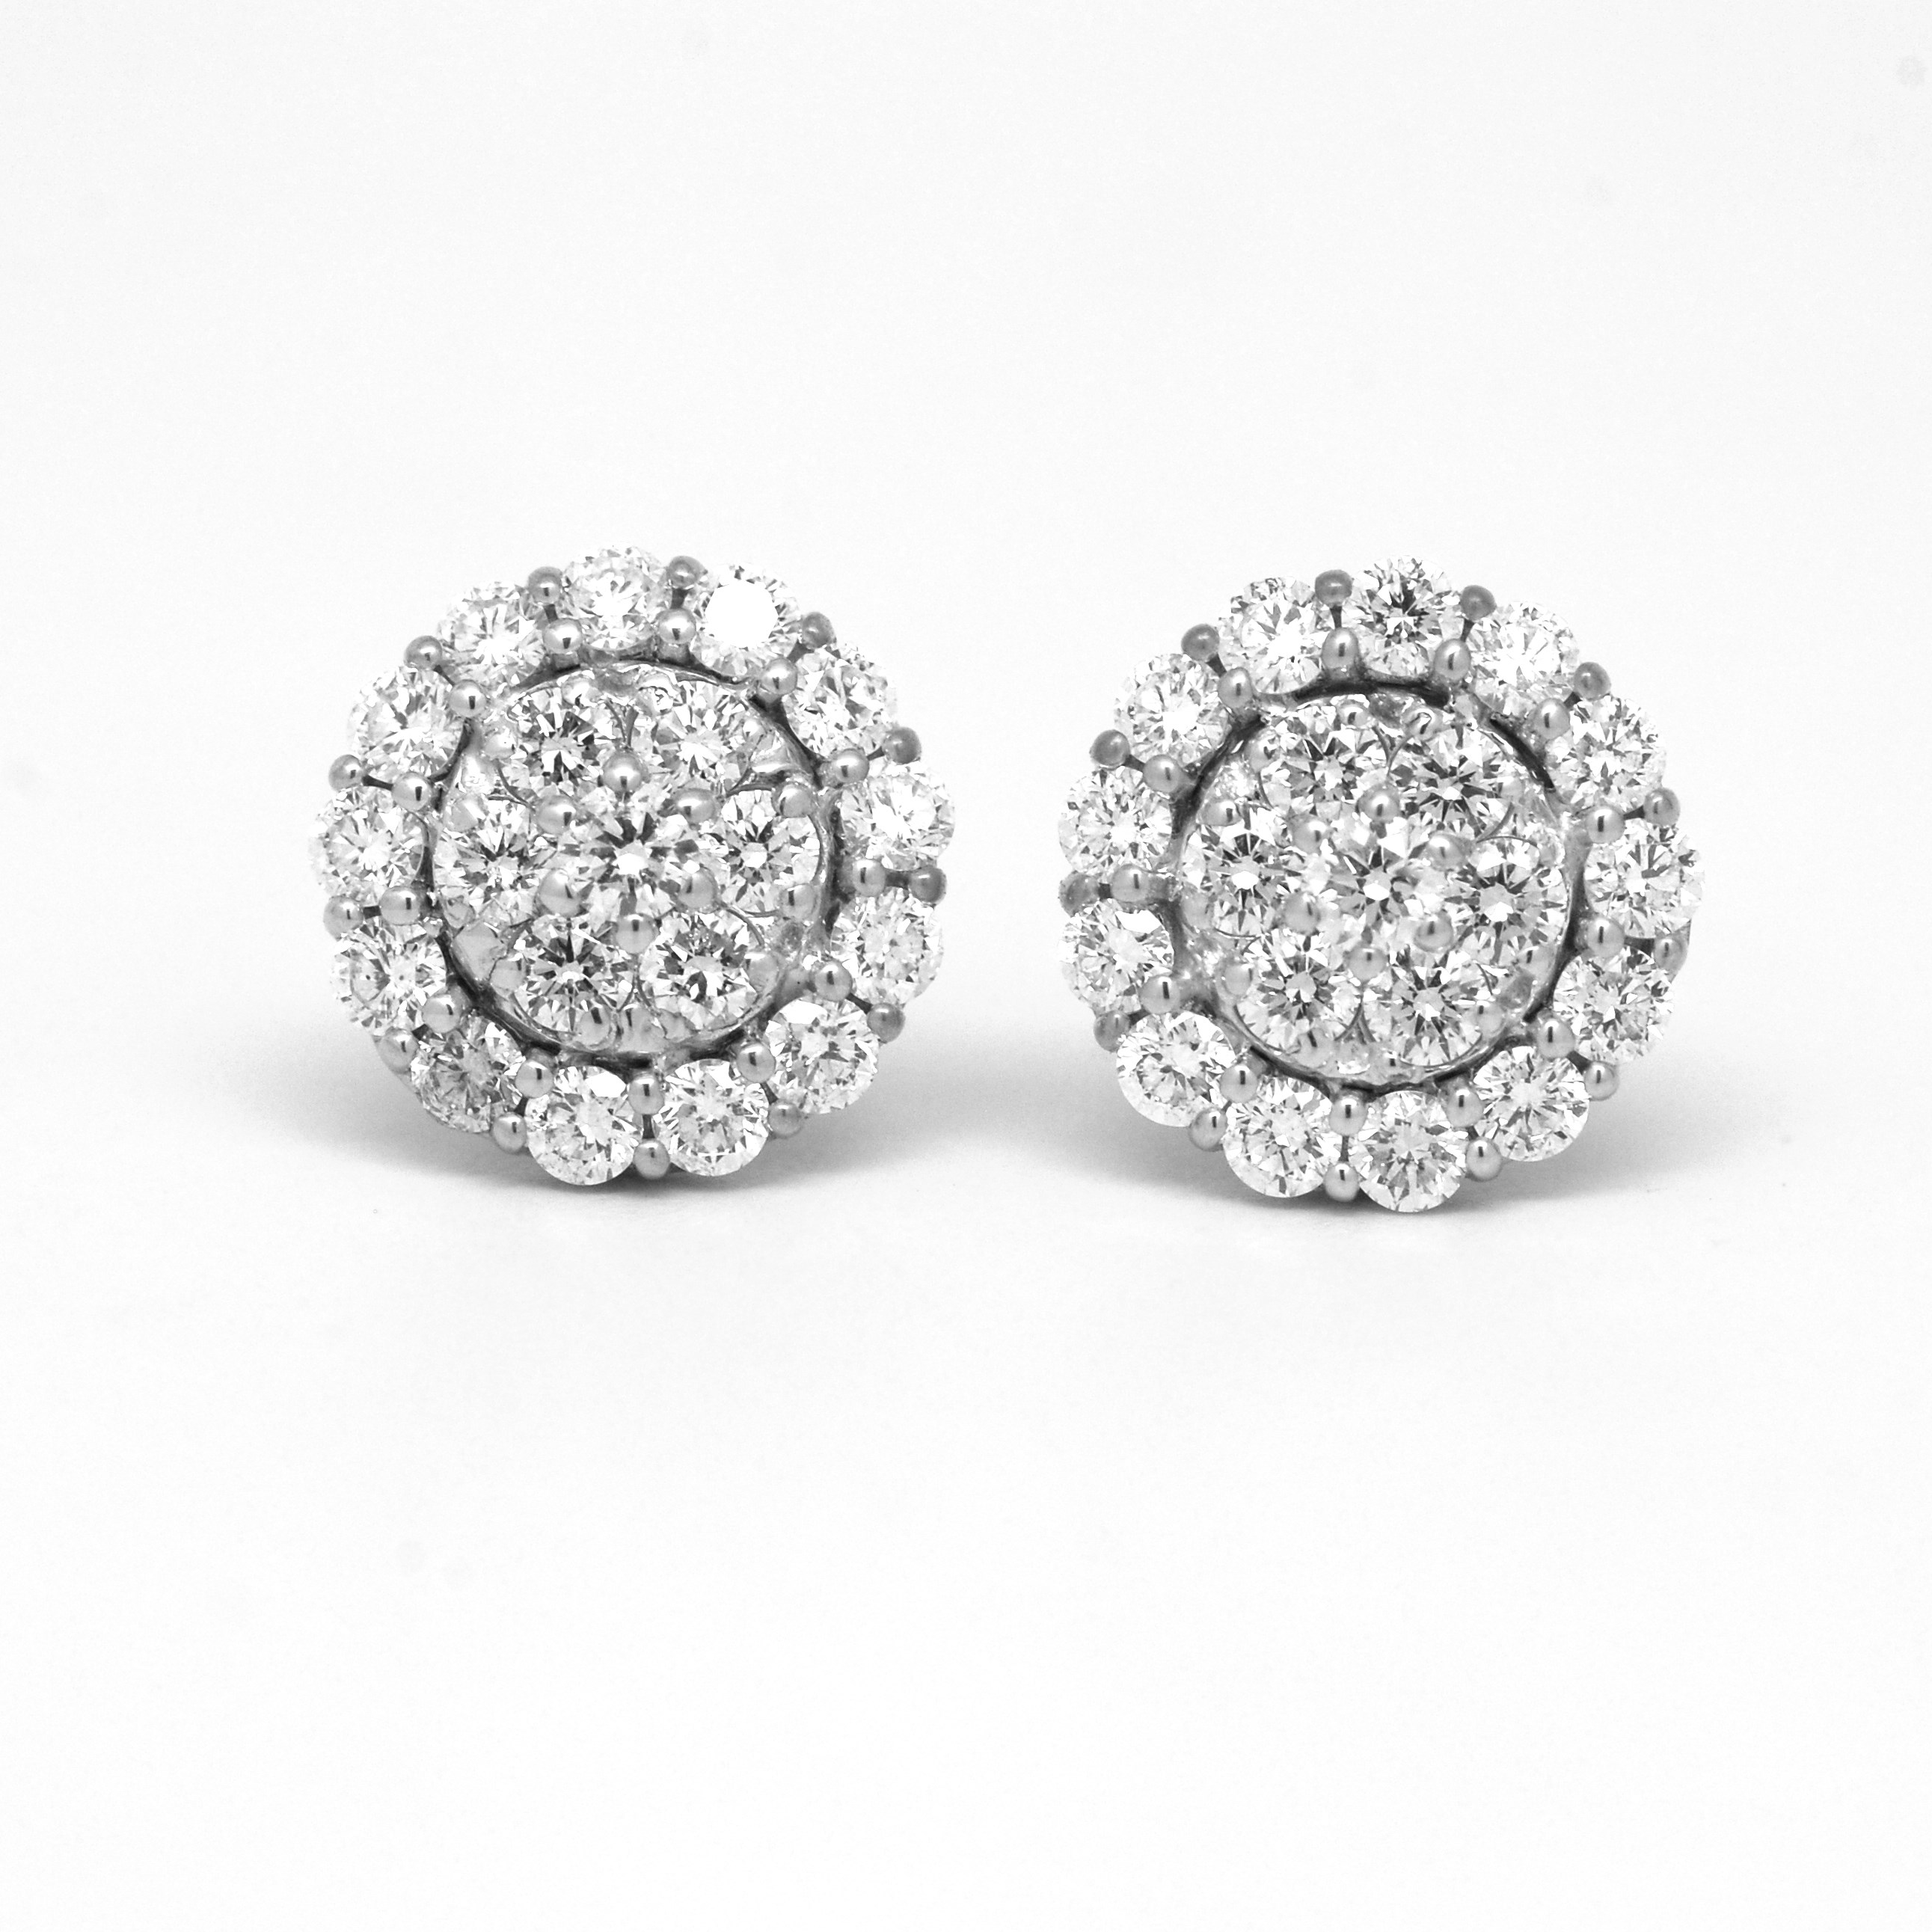 white diamond earrings earring wendy nichol products collections single baguette stud